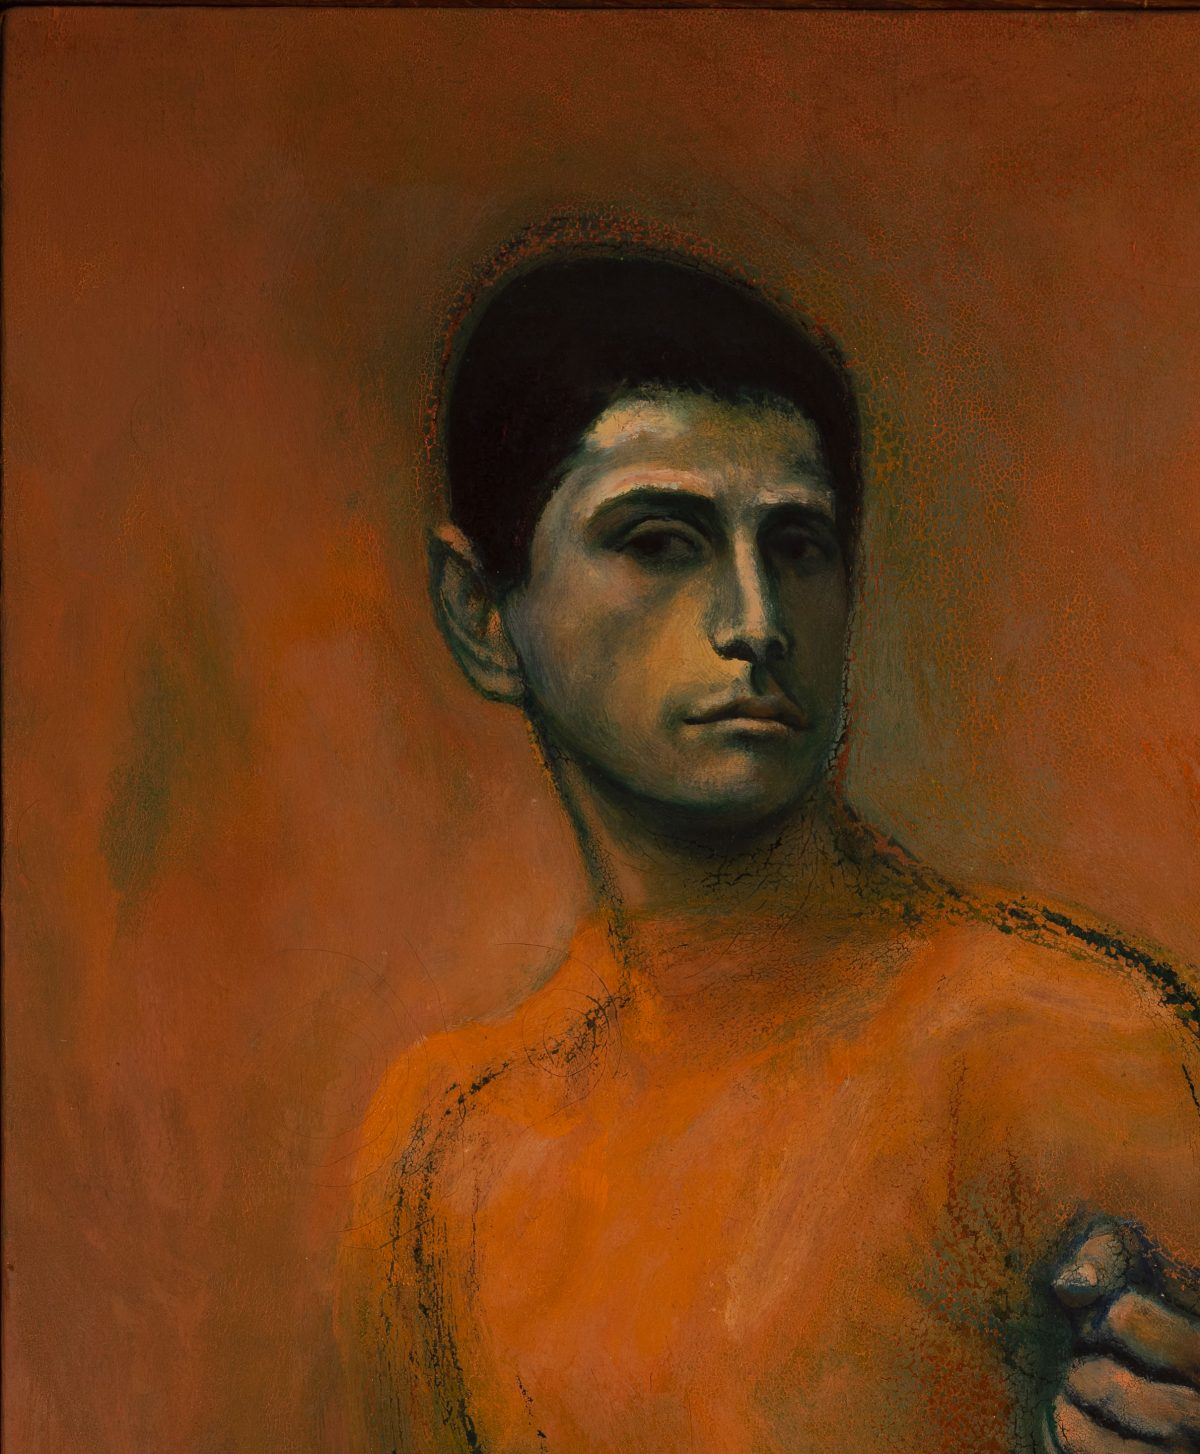 Symeon Shimin  - Untitled (Portrait of a man)